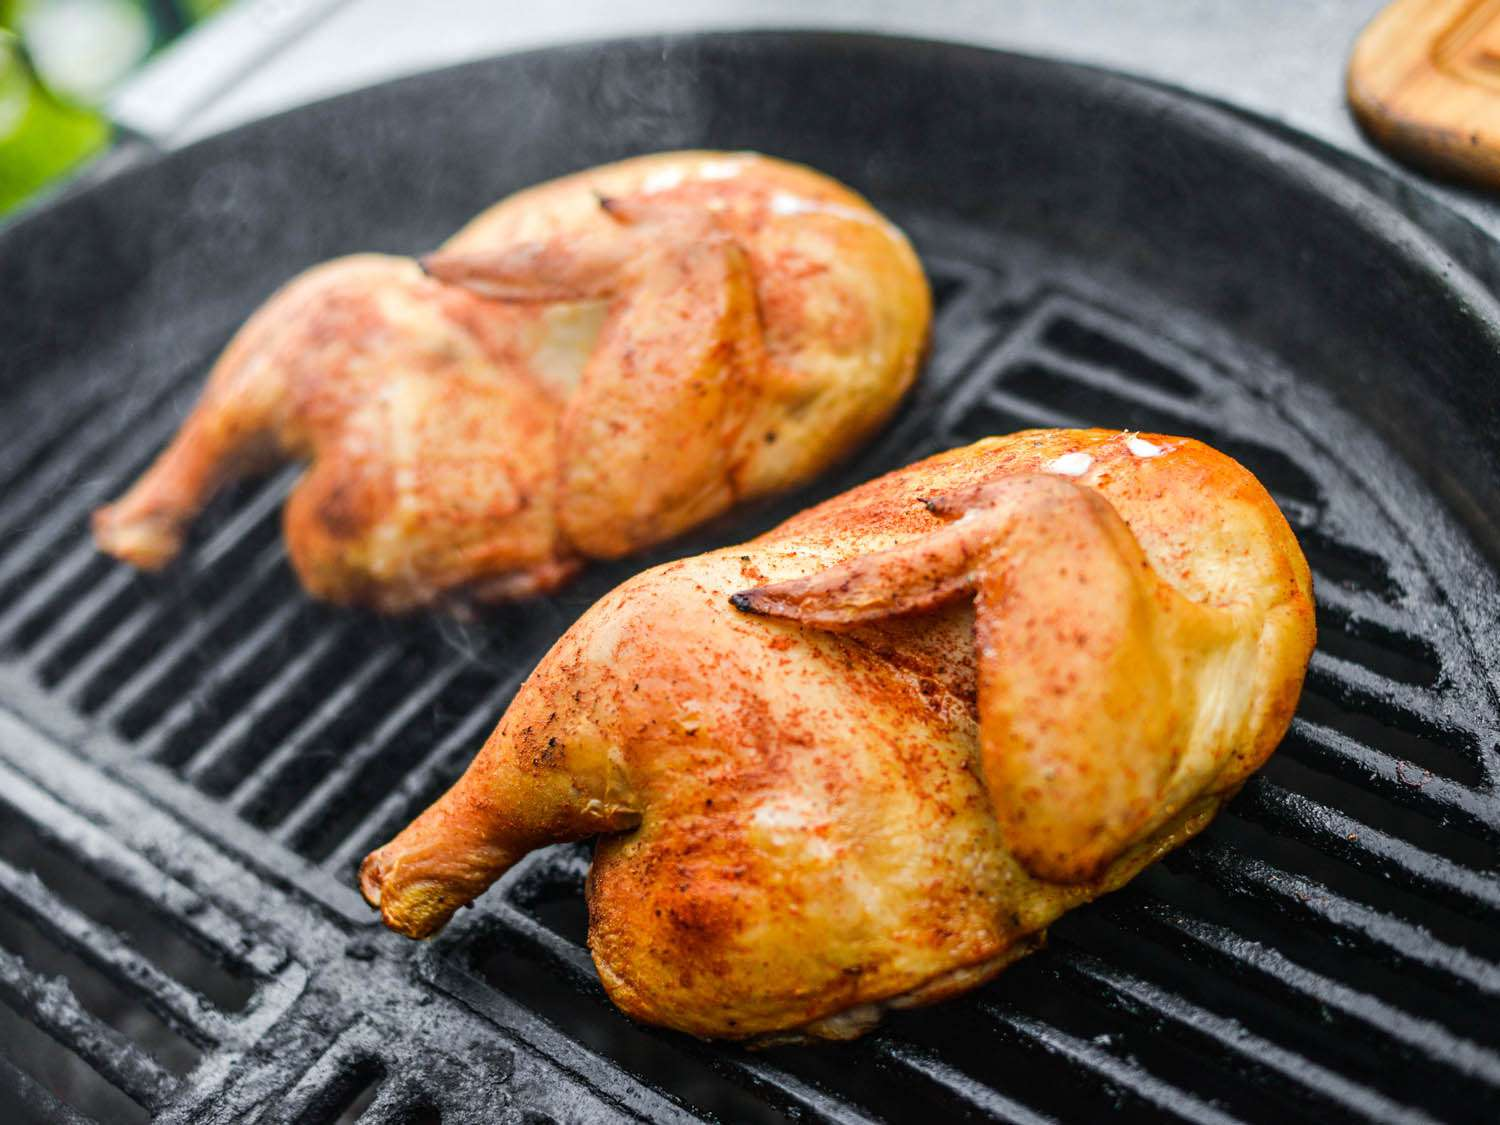 20140625-pulled-chicken-grill-smoked.jpg